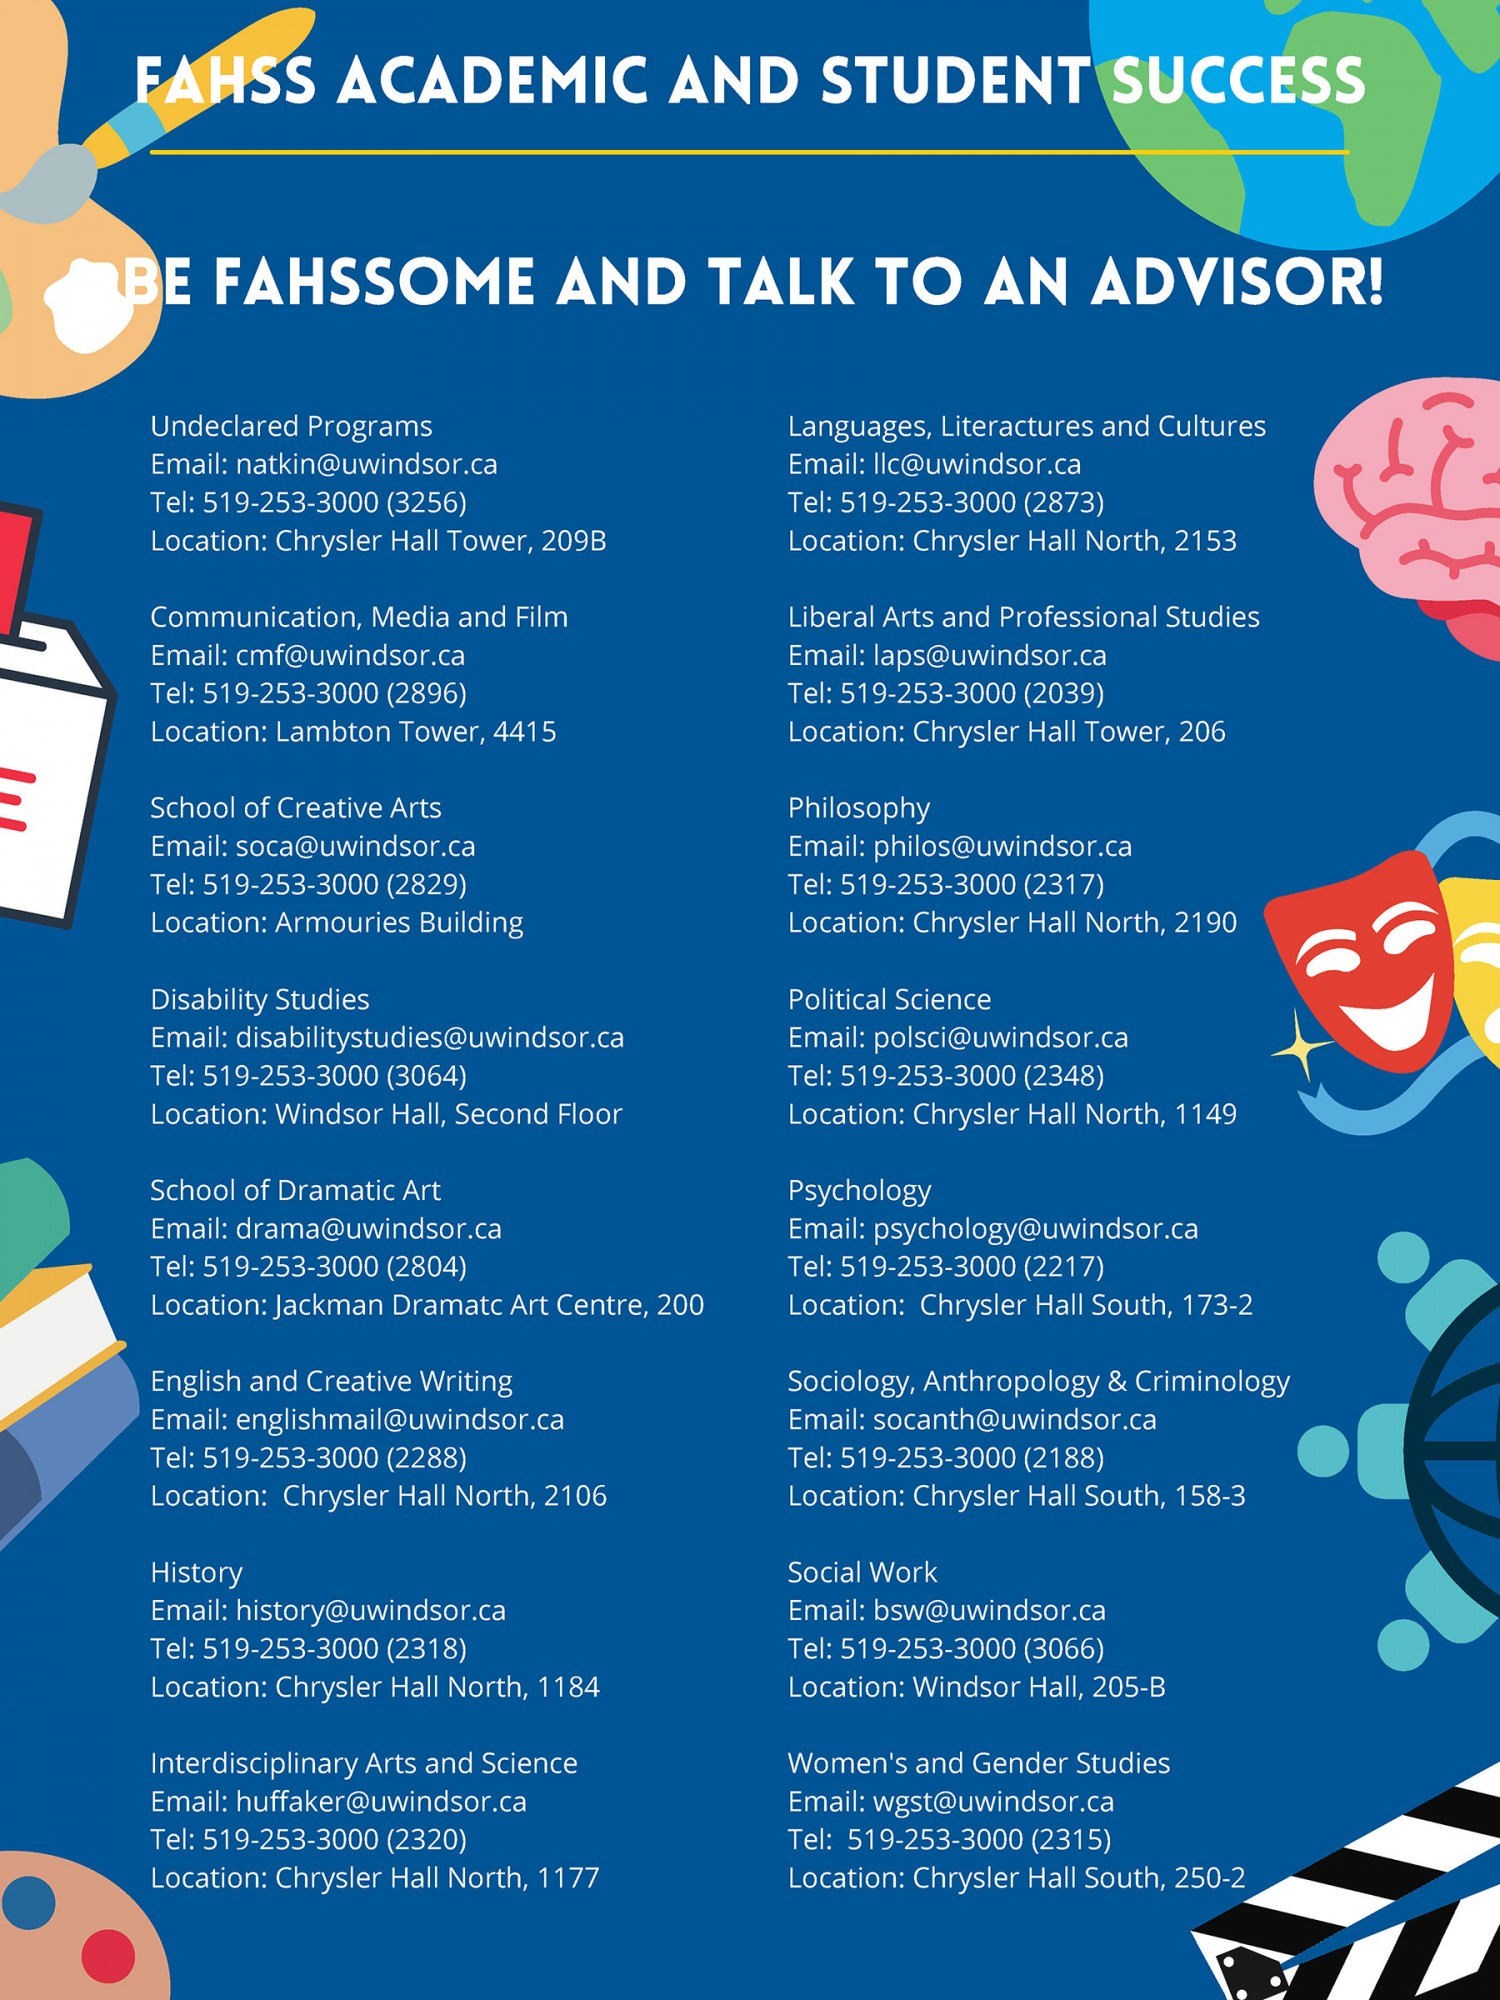 Image lists academic advising contact information for each program/department in FAHSS